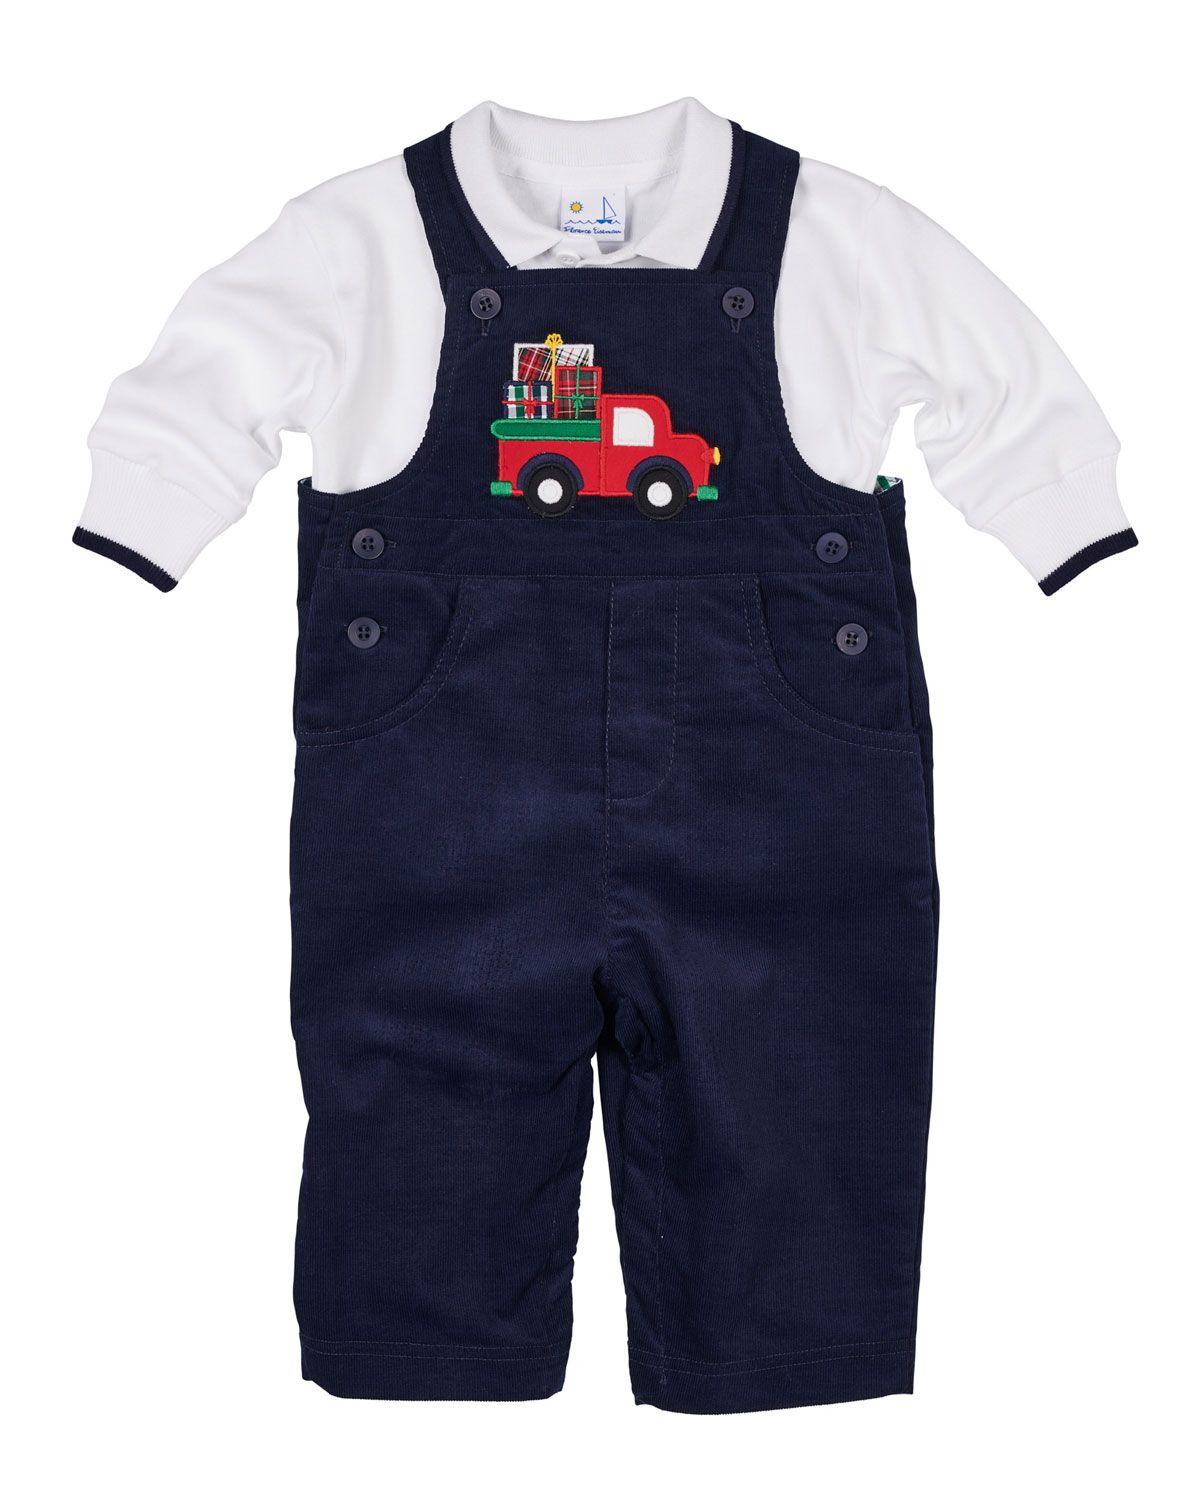 79d52833749f Florence Eiseman Pocket Full of Presents Overalls w  Long-Sleeve Polo Top